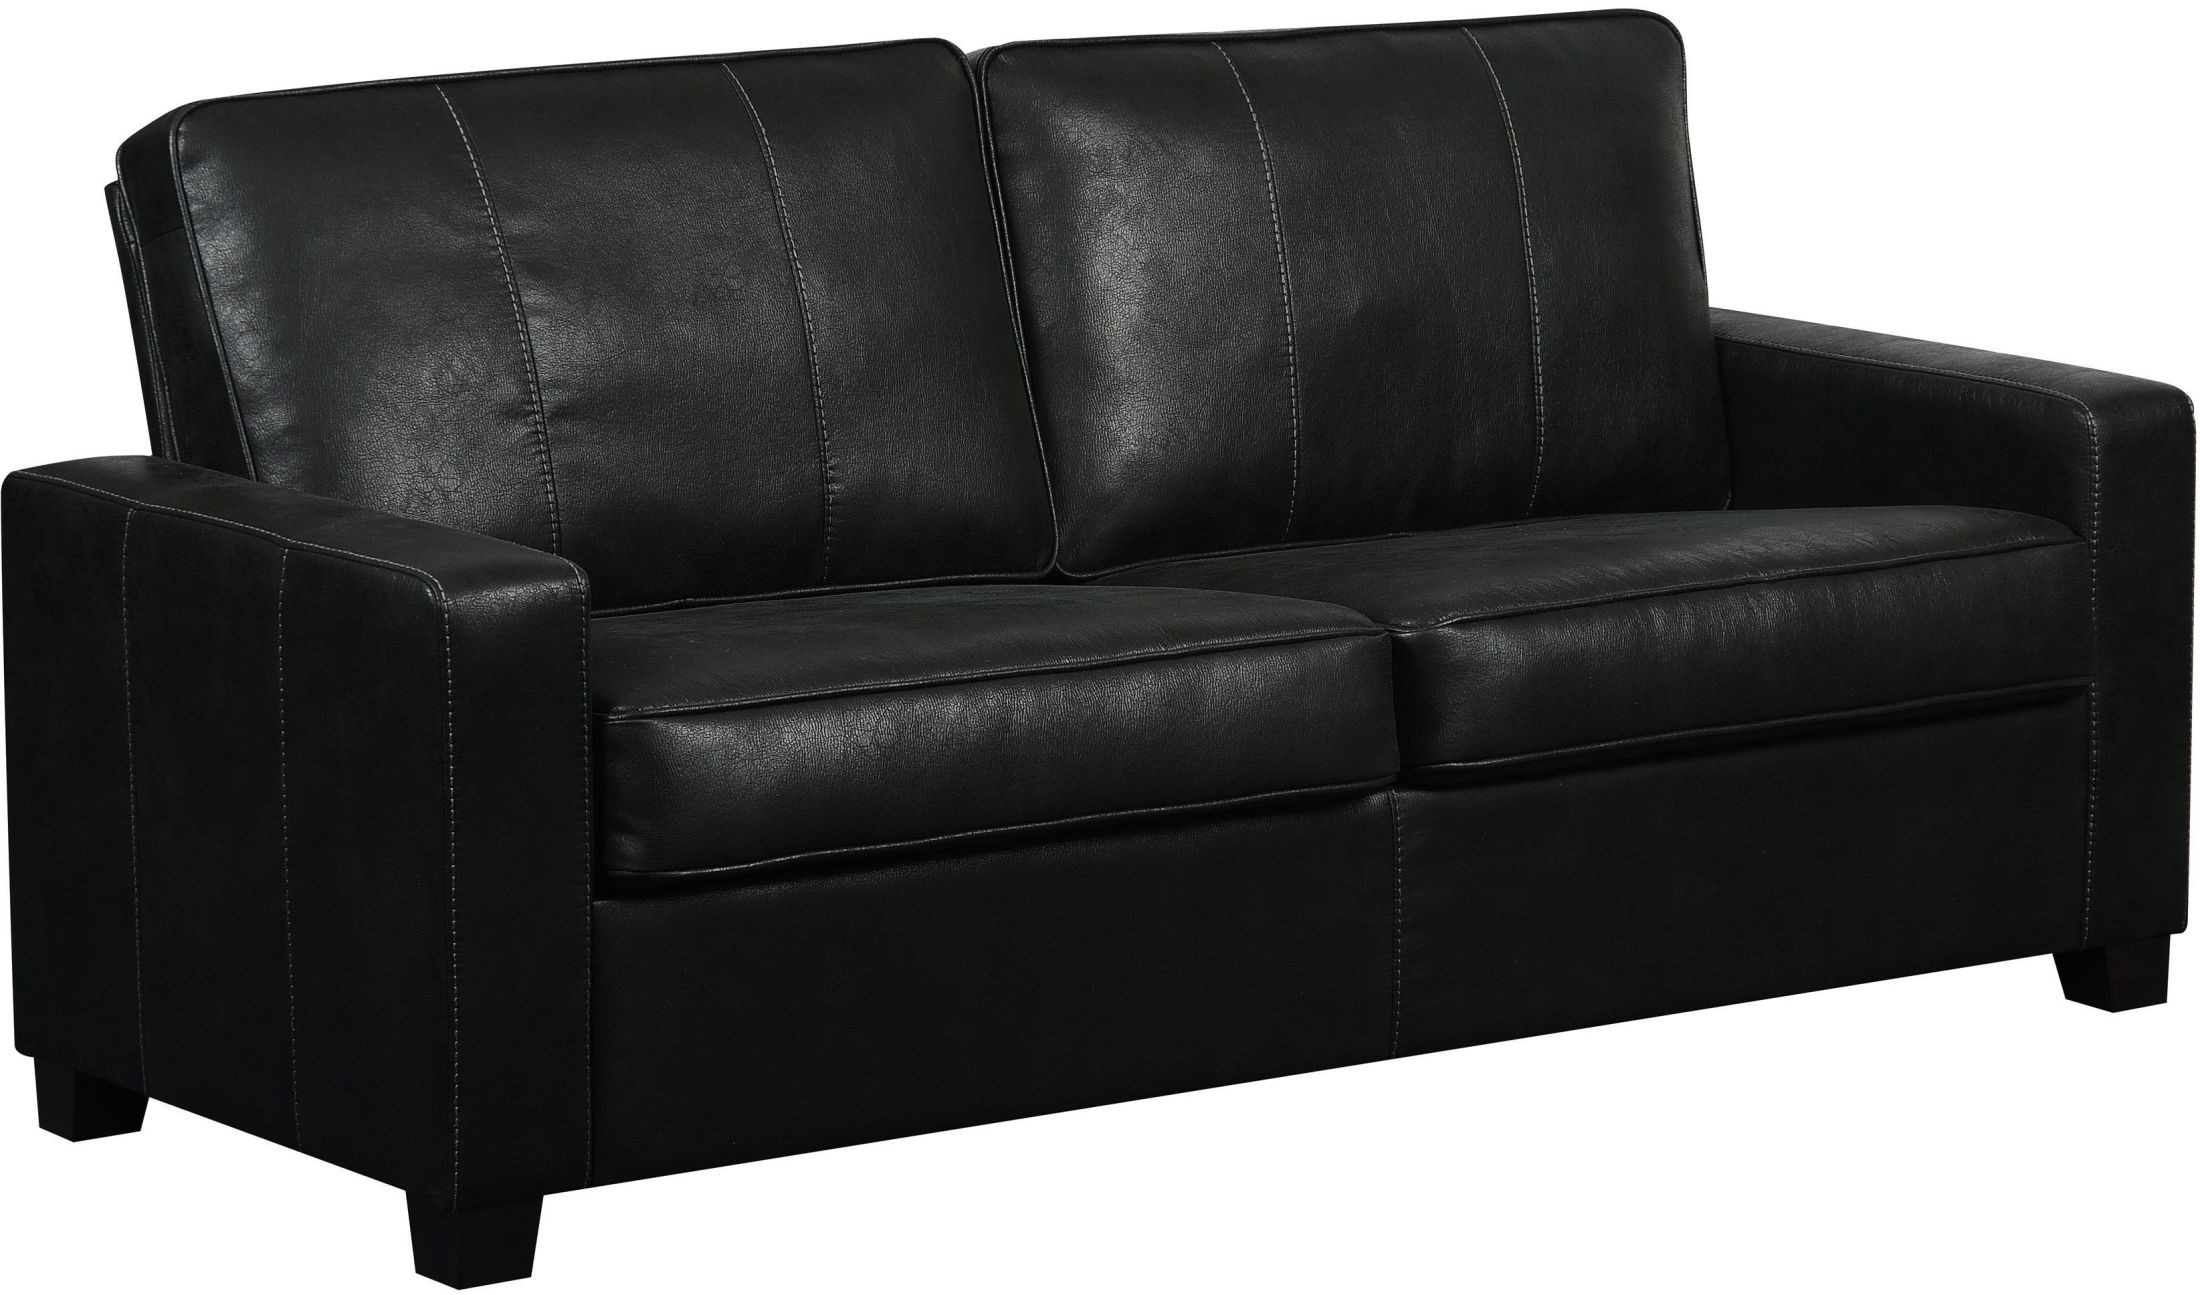 Pulaski Furniture Sofa Review